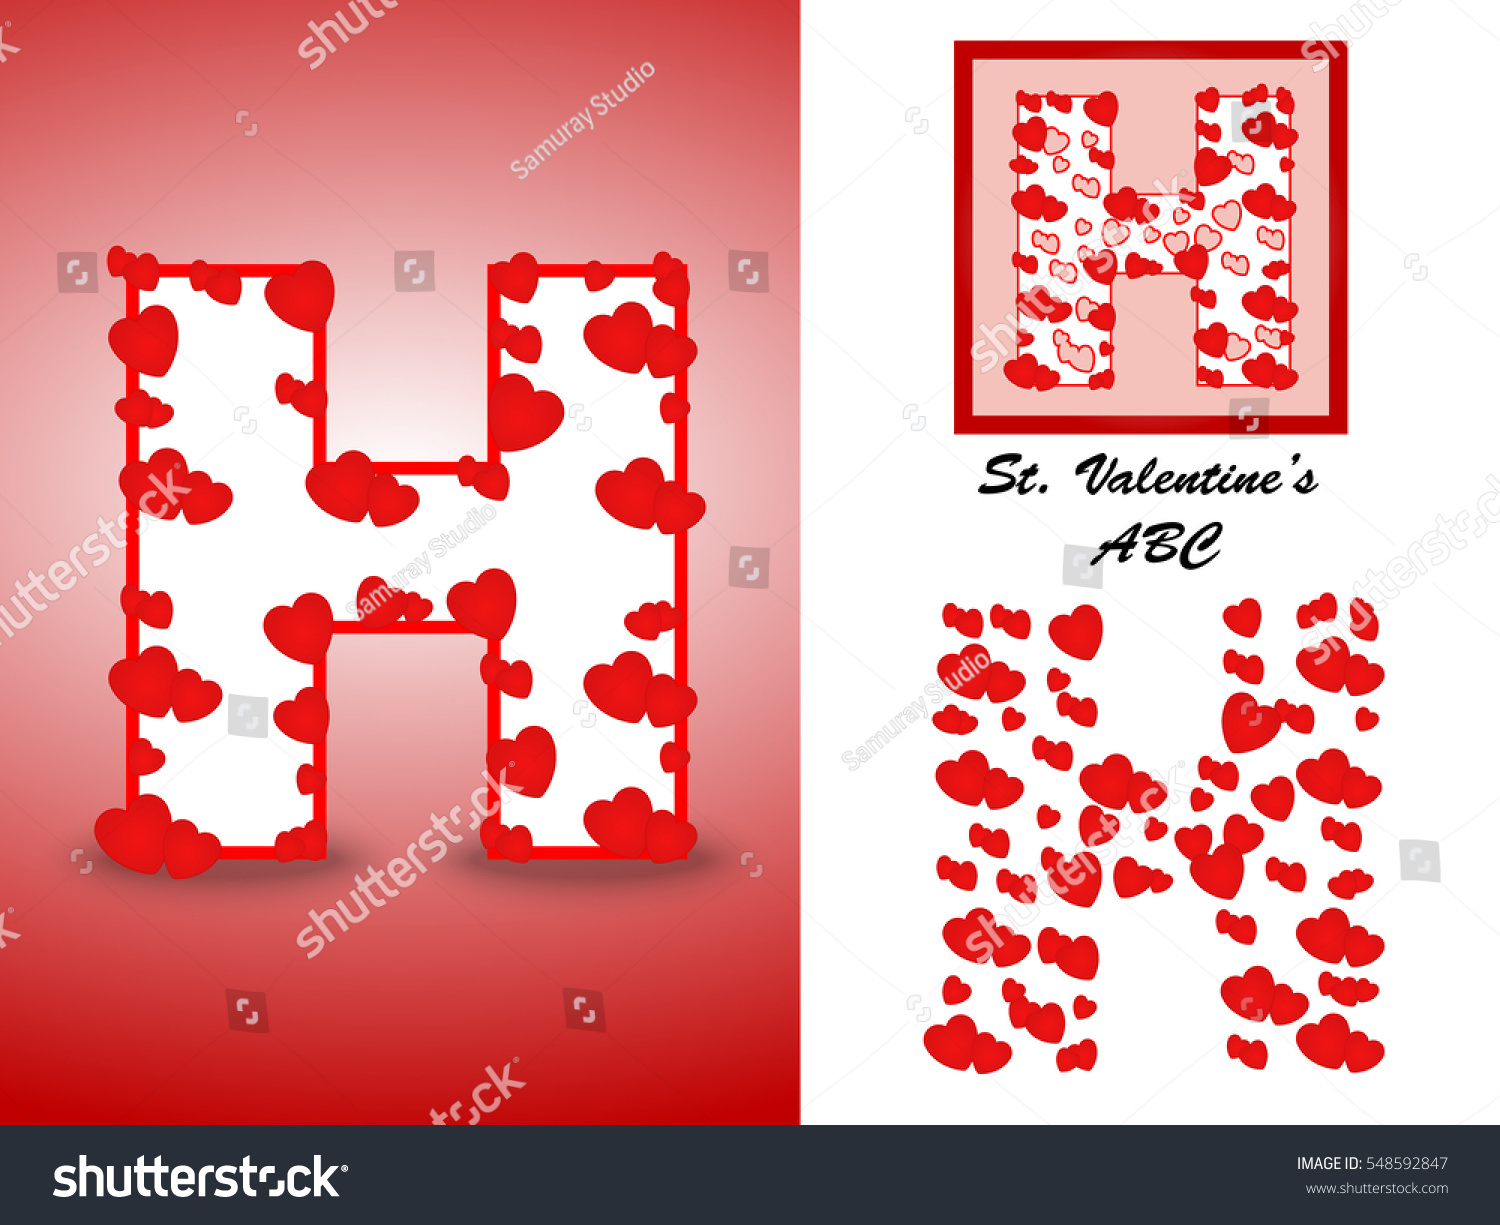 Alphabet Letter H Red Heart Valentine Stock Vector (Royalty Free ...